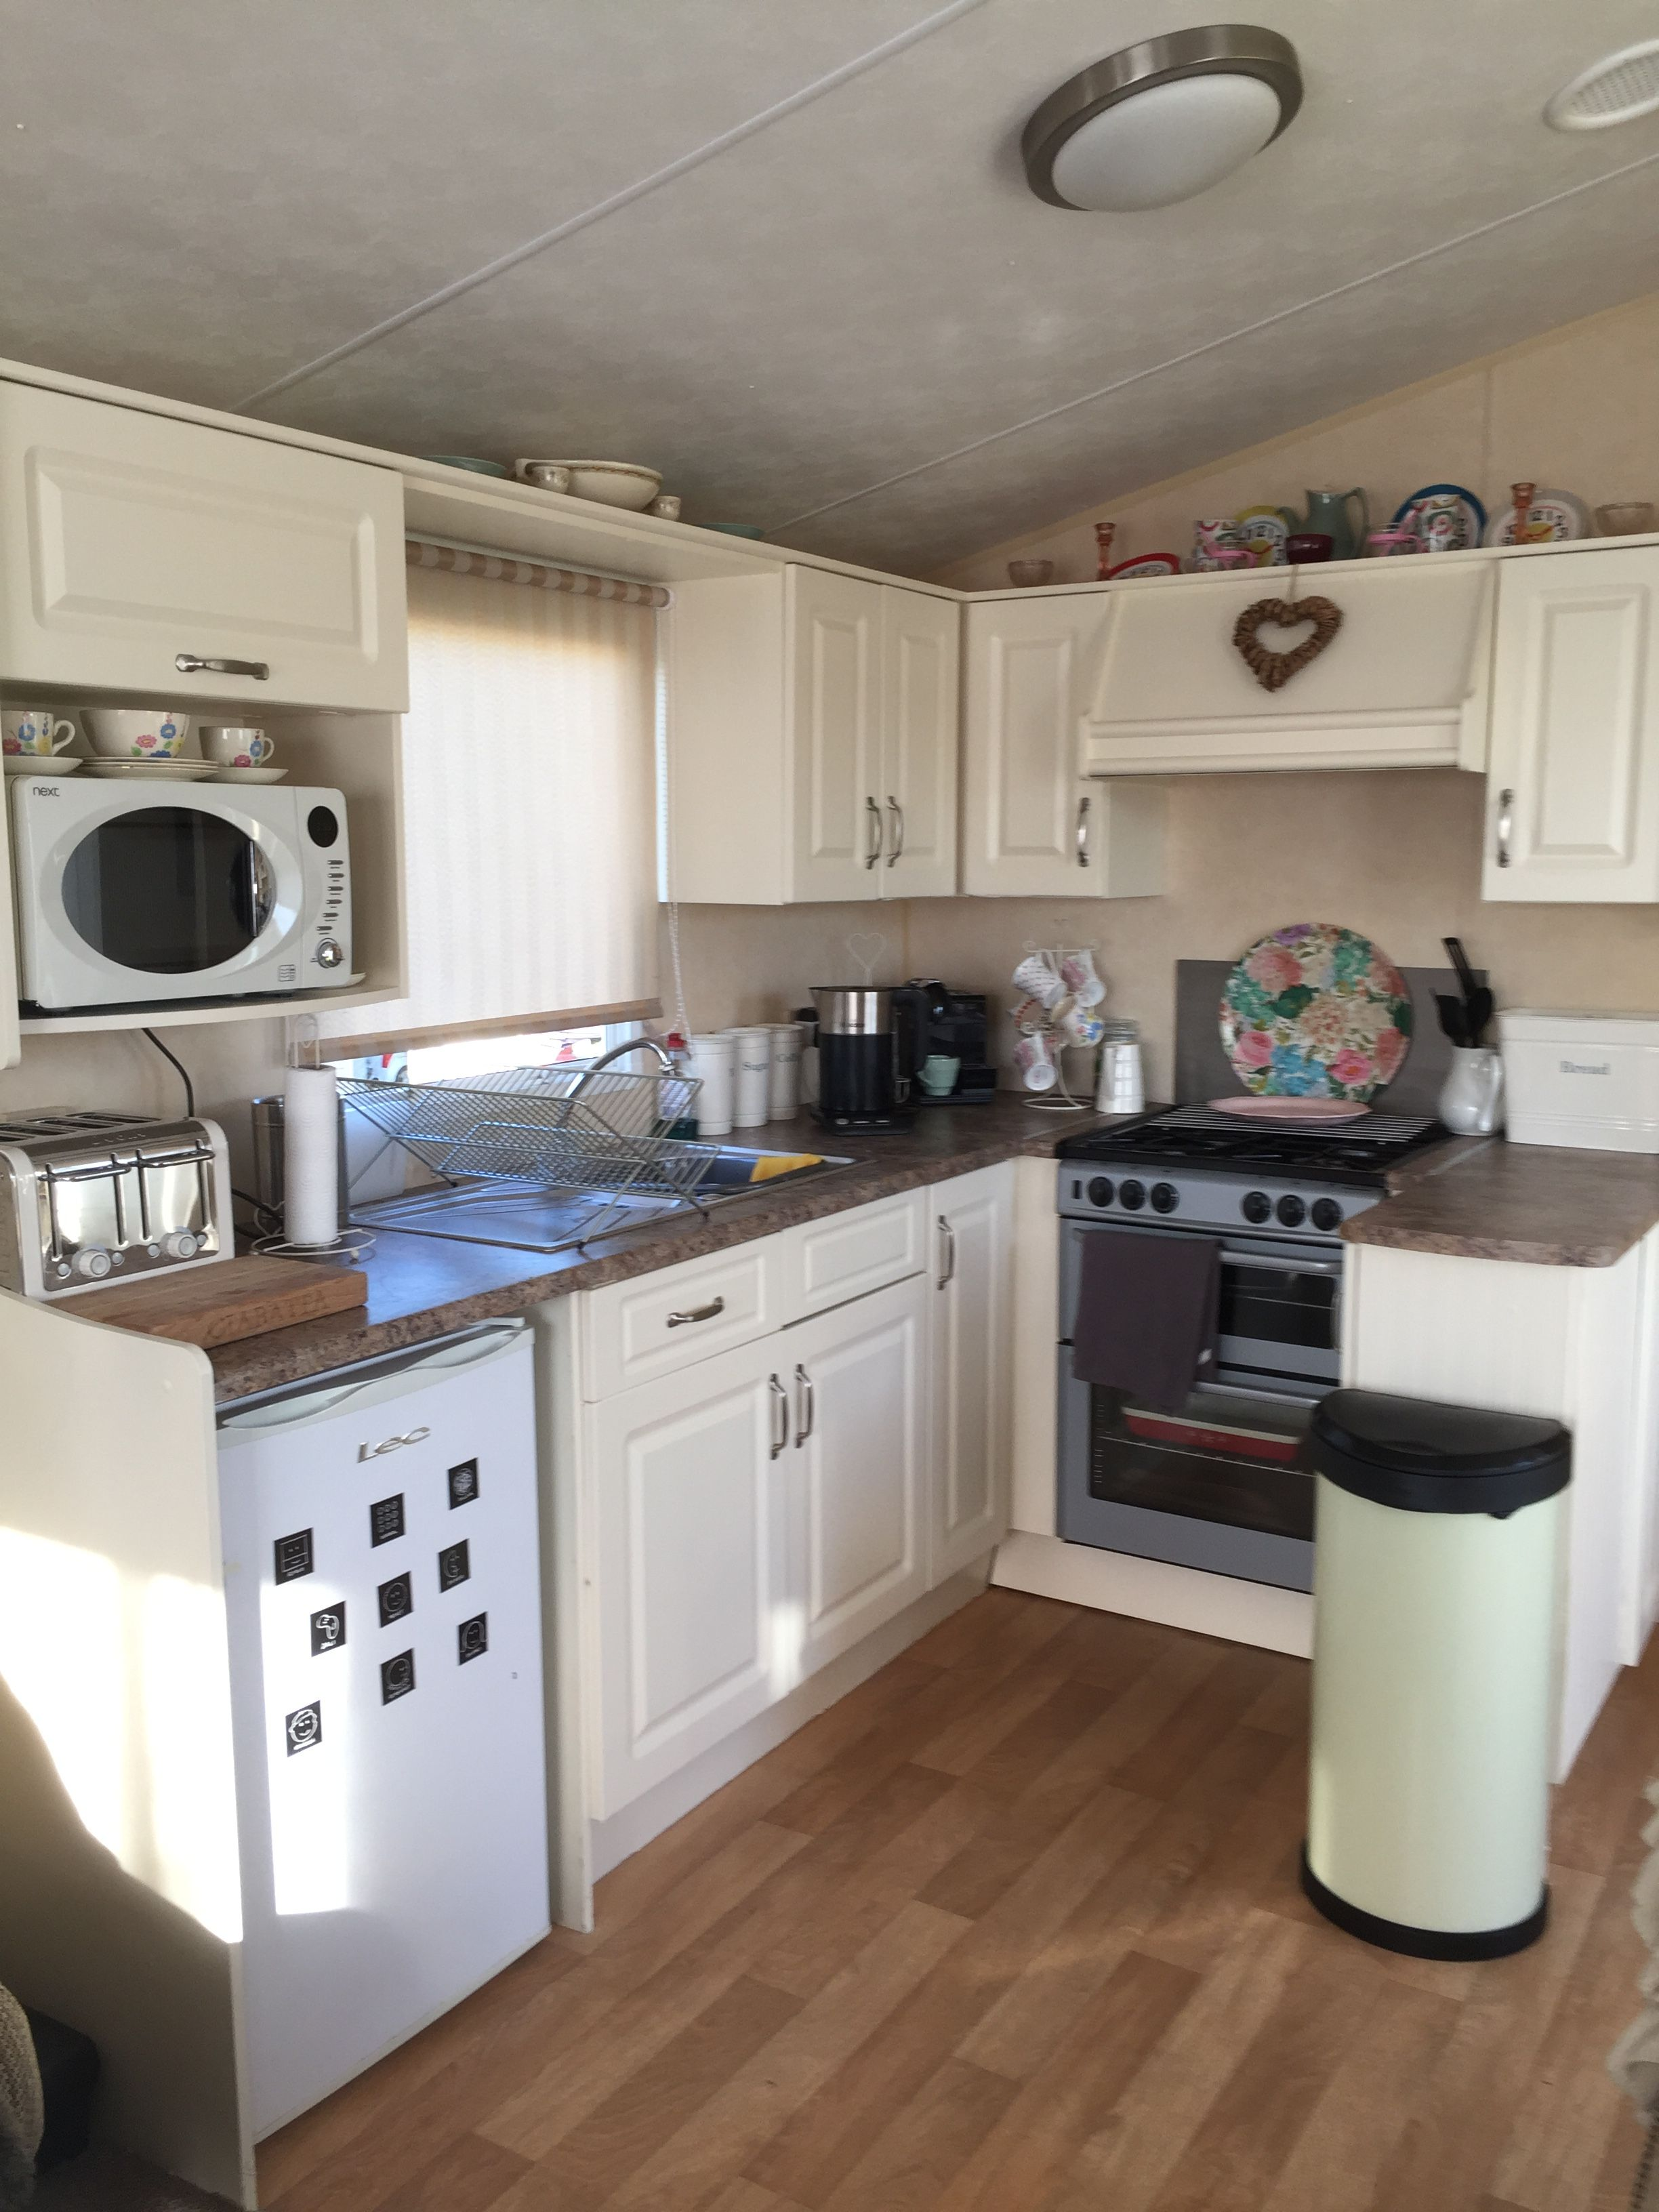 Replacement Caravan Kitchen Cupboard Doors